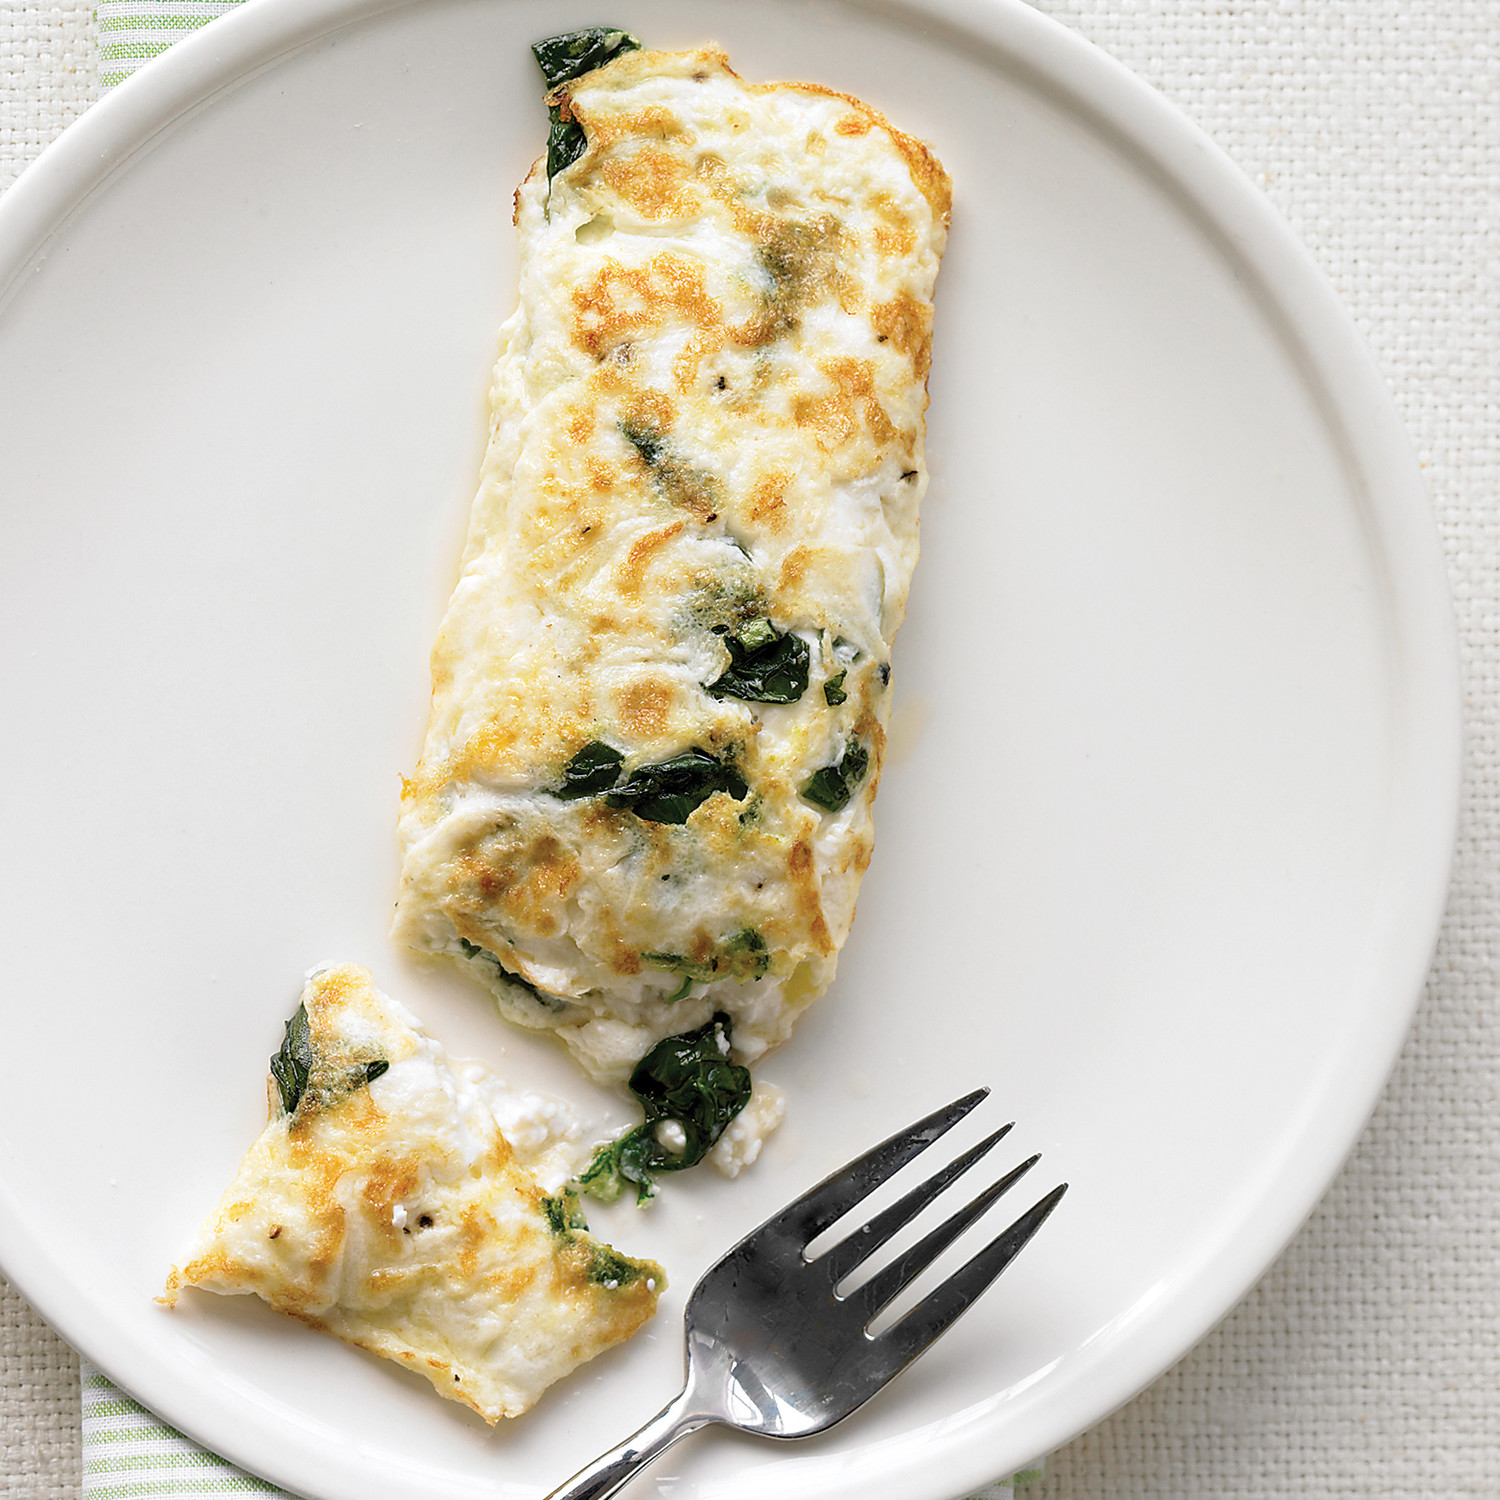 Image result for egg white omelet